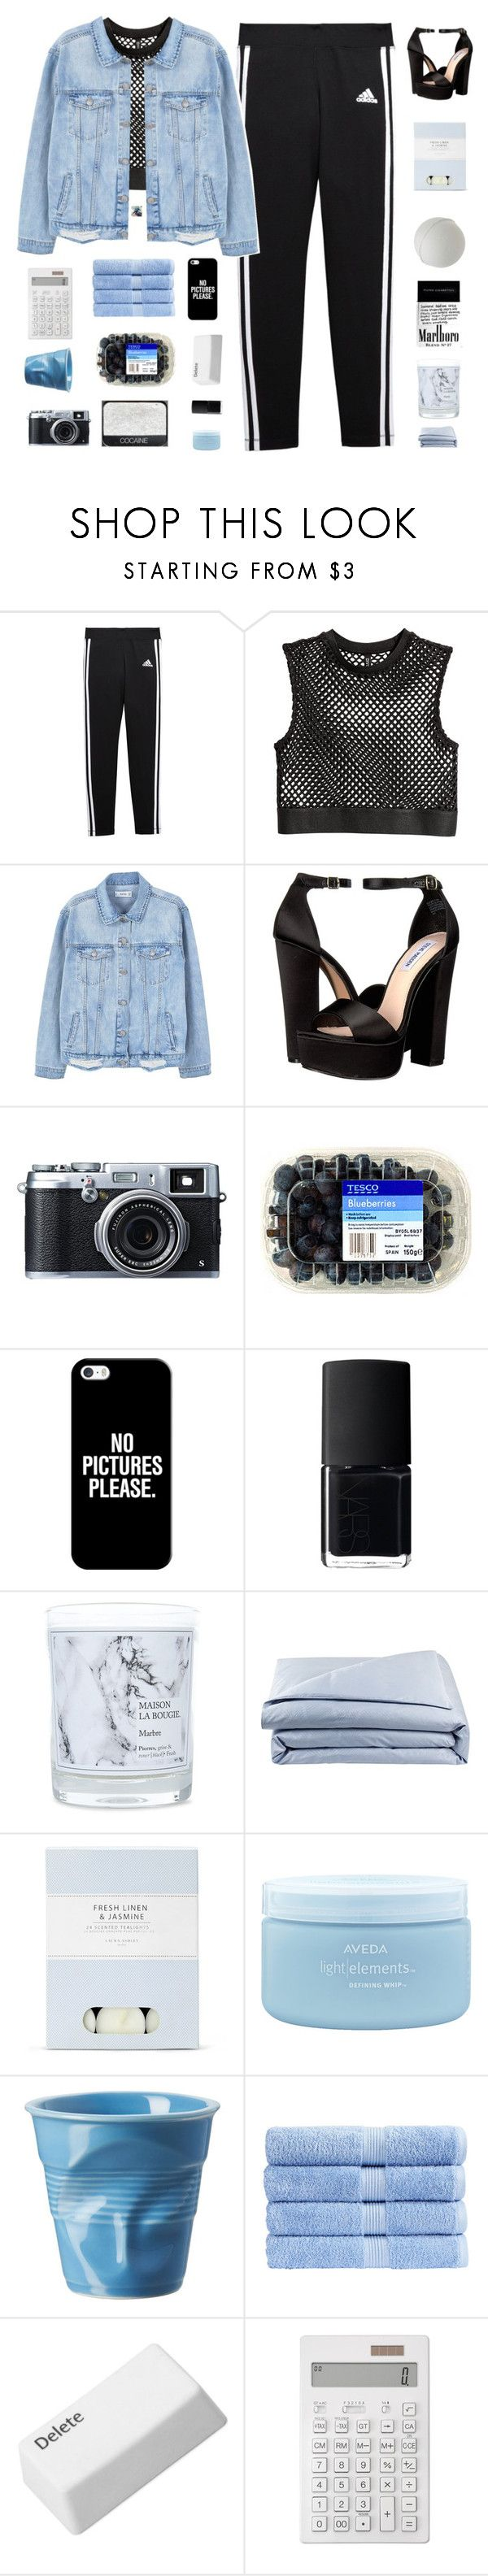 """♡ fifteen years old and smoking hand-rolled cigarettes"" by deli-lemonade ❤ liked on Polyvore featuring adidas, MANGO, Steve Madden, Fujifilm, Casetify, NARS Cosmetics, Maison La Bougie, Frette, Laura Ashley and Aveda"